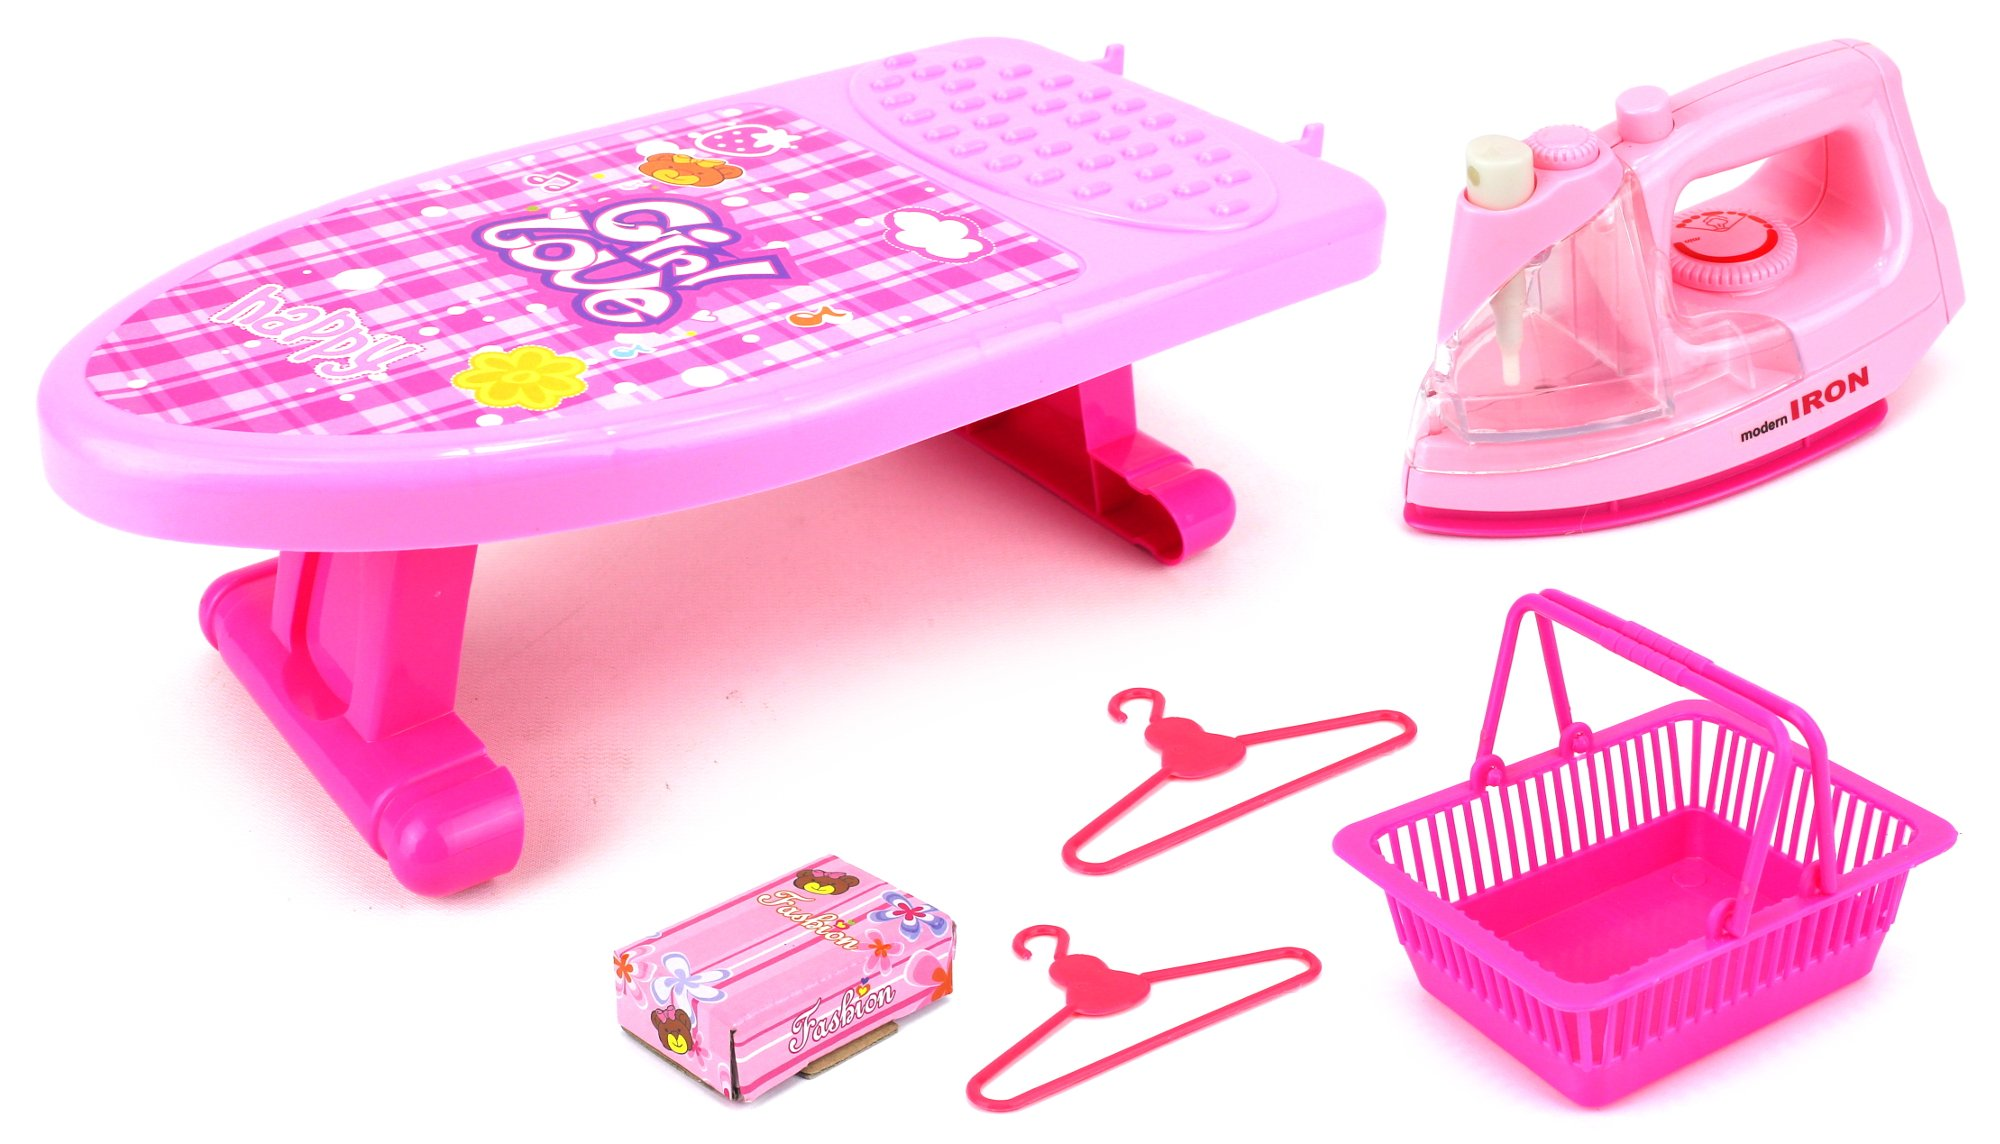 Happy Mini Iron Children Kid's Toy Clothing Iron Board Playset w/ Clothes Iron, Ironing Board, Accessories